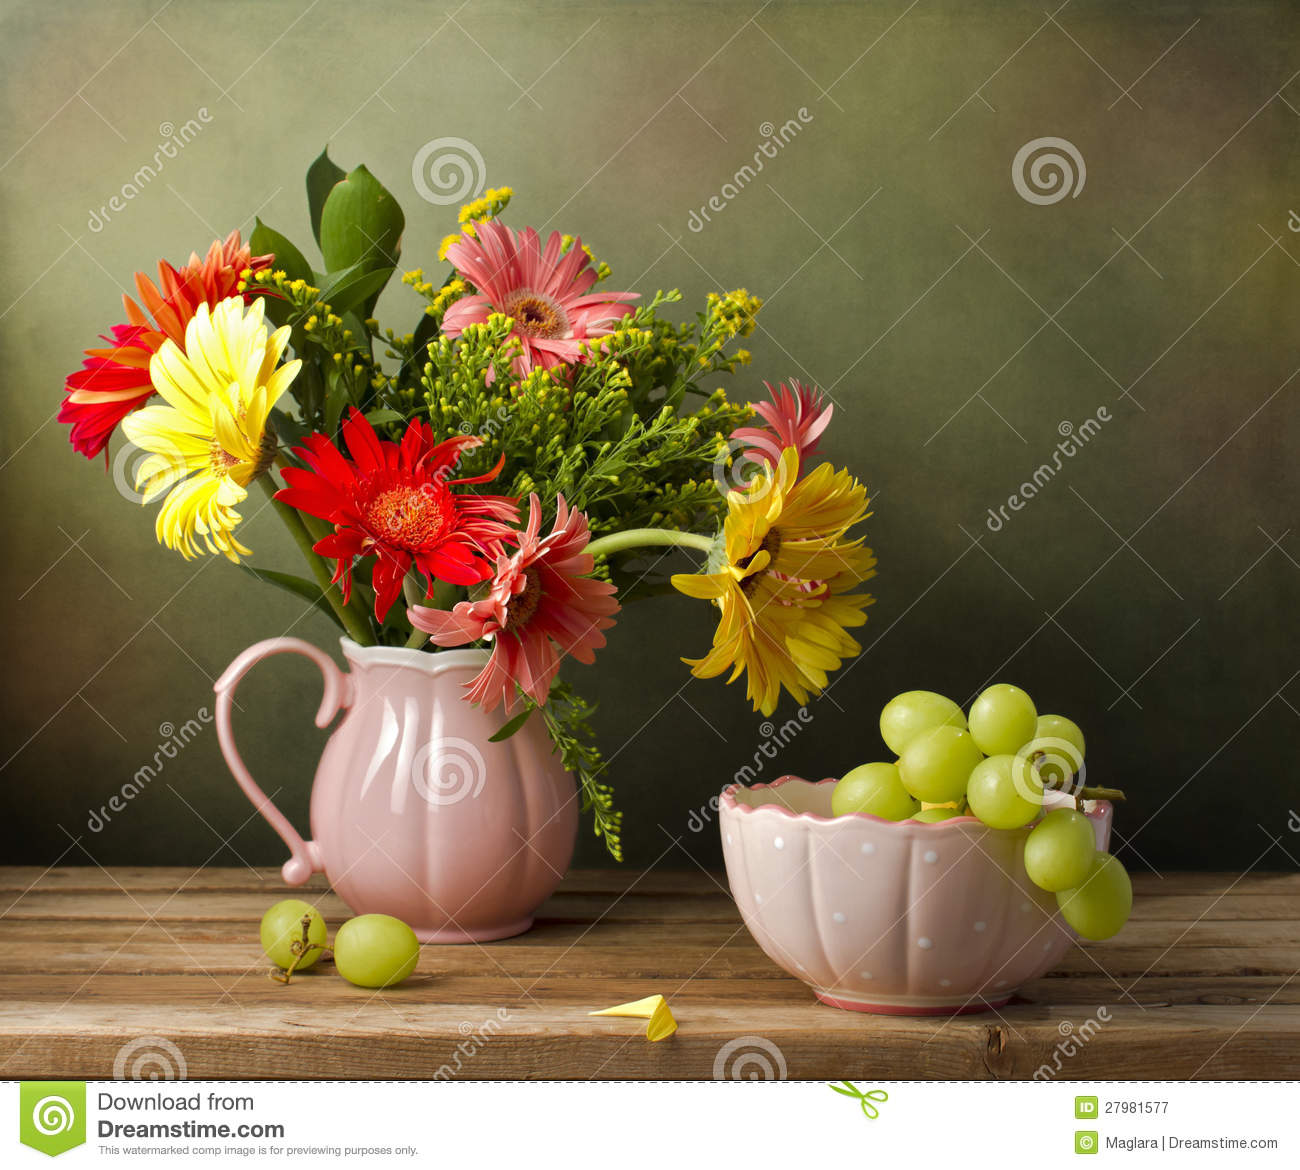 Royalty Free Stock Photography: Still life with beautiful flower ...: www.dreamstime.com/royalty-free-stock-photography-still-life...